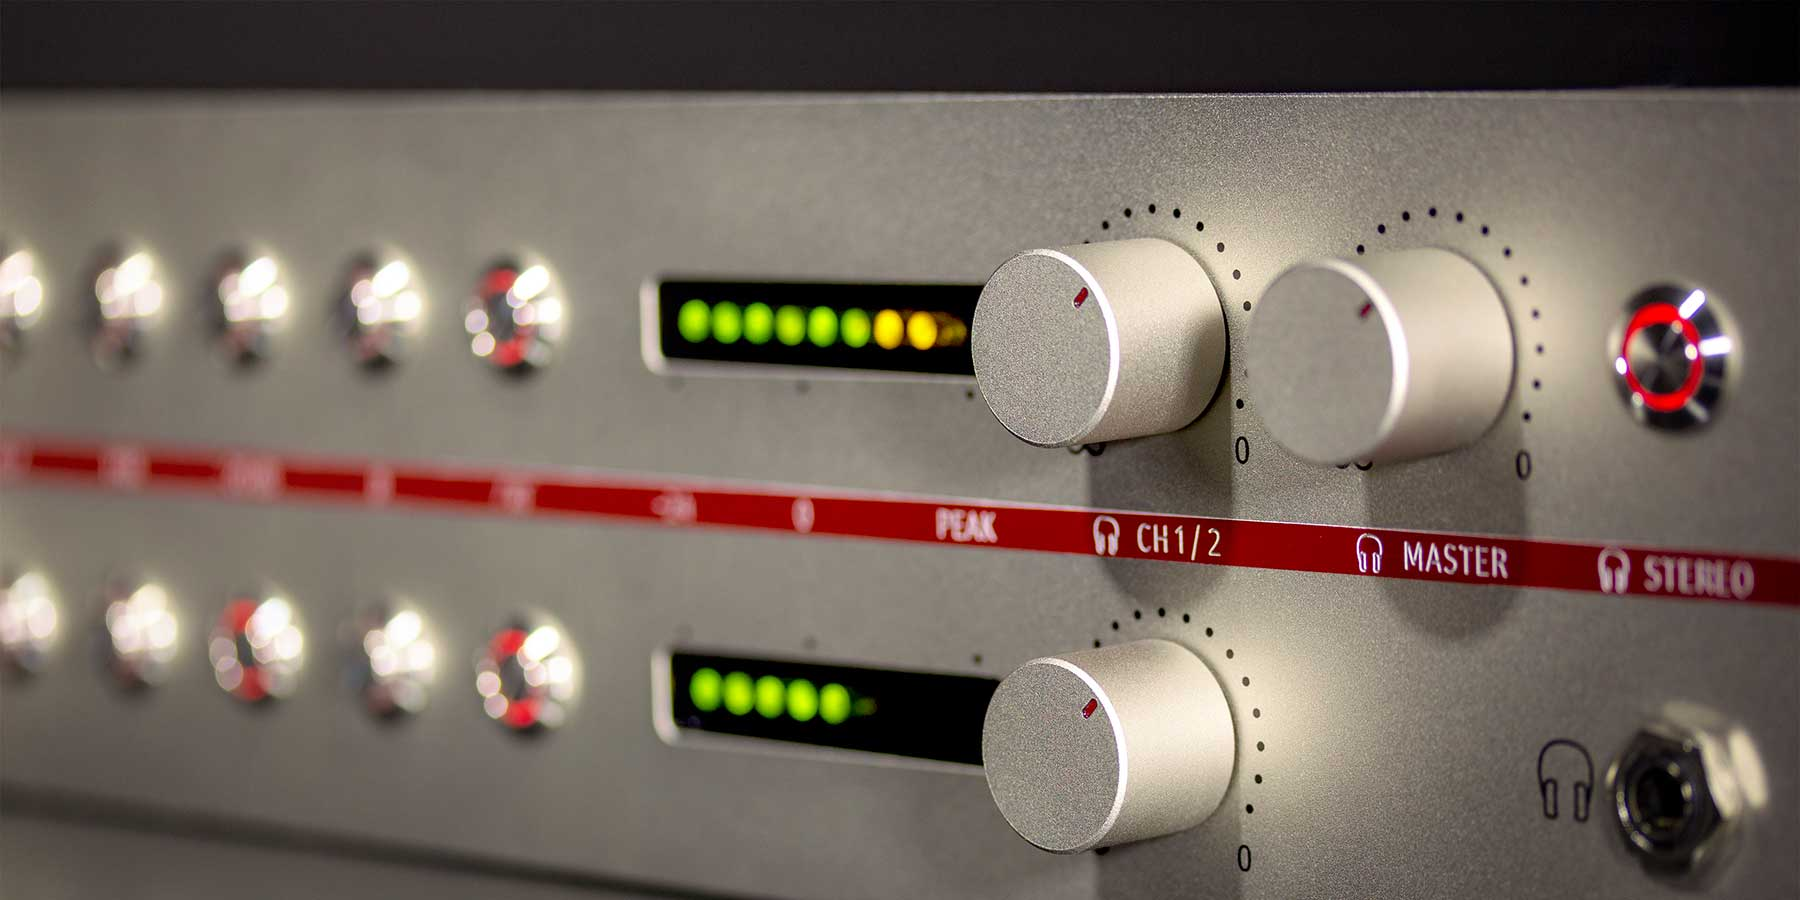 Neumann V 402 Preamp Close Up